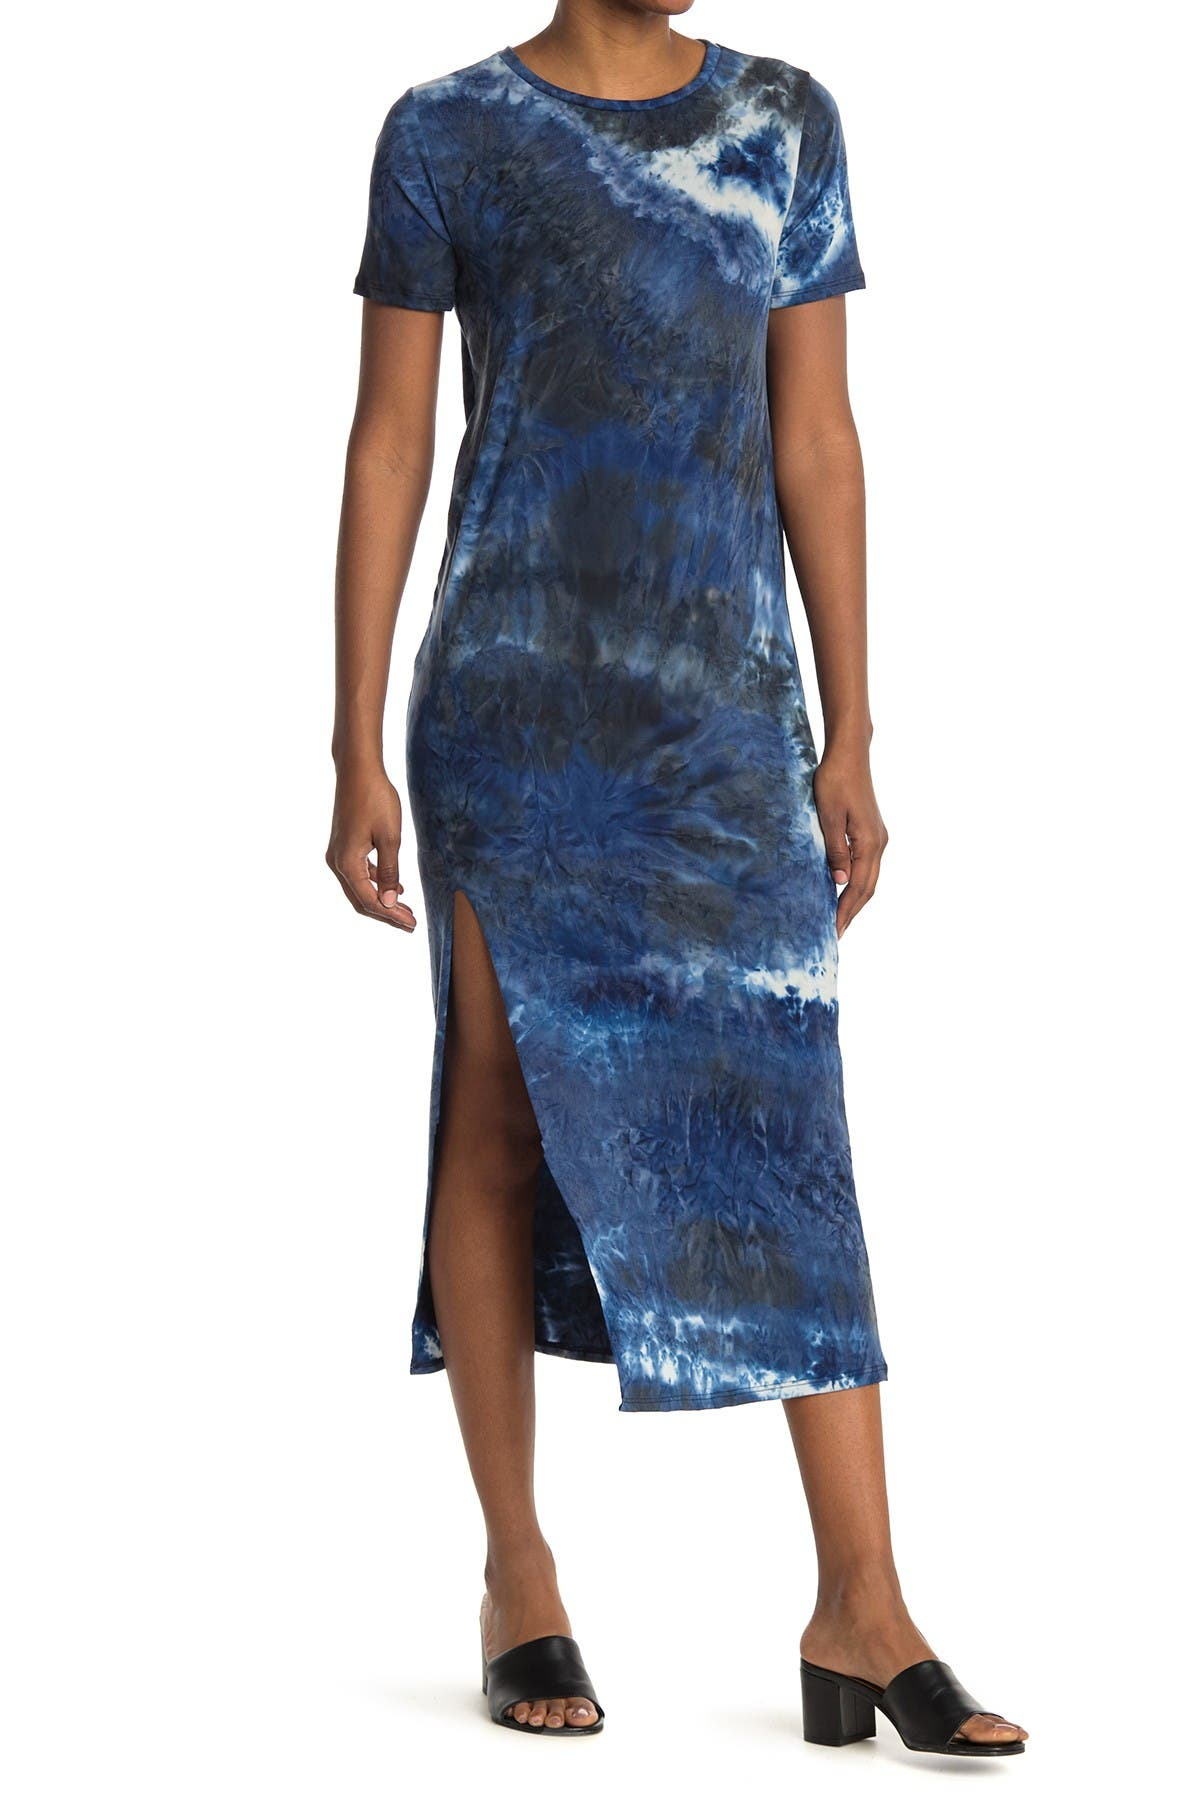 Image of Velvet Torch Tie Dye T-Shirt Maxi Dress